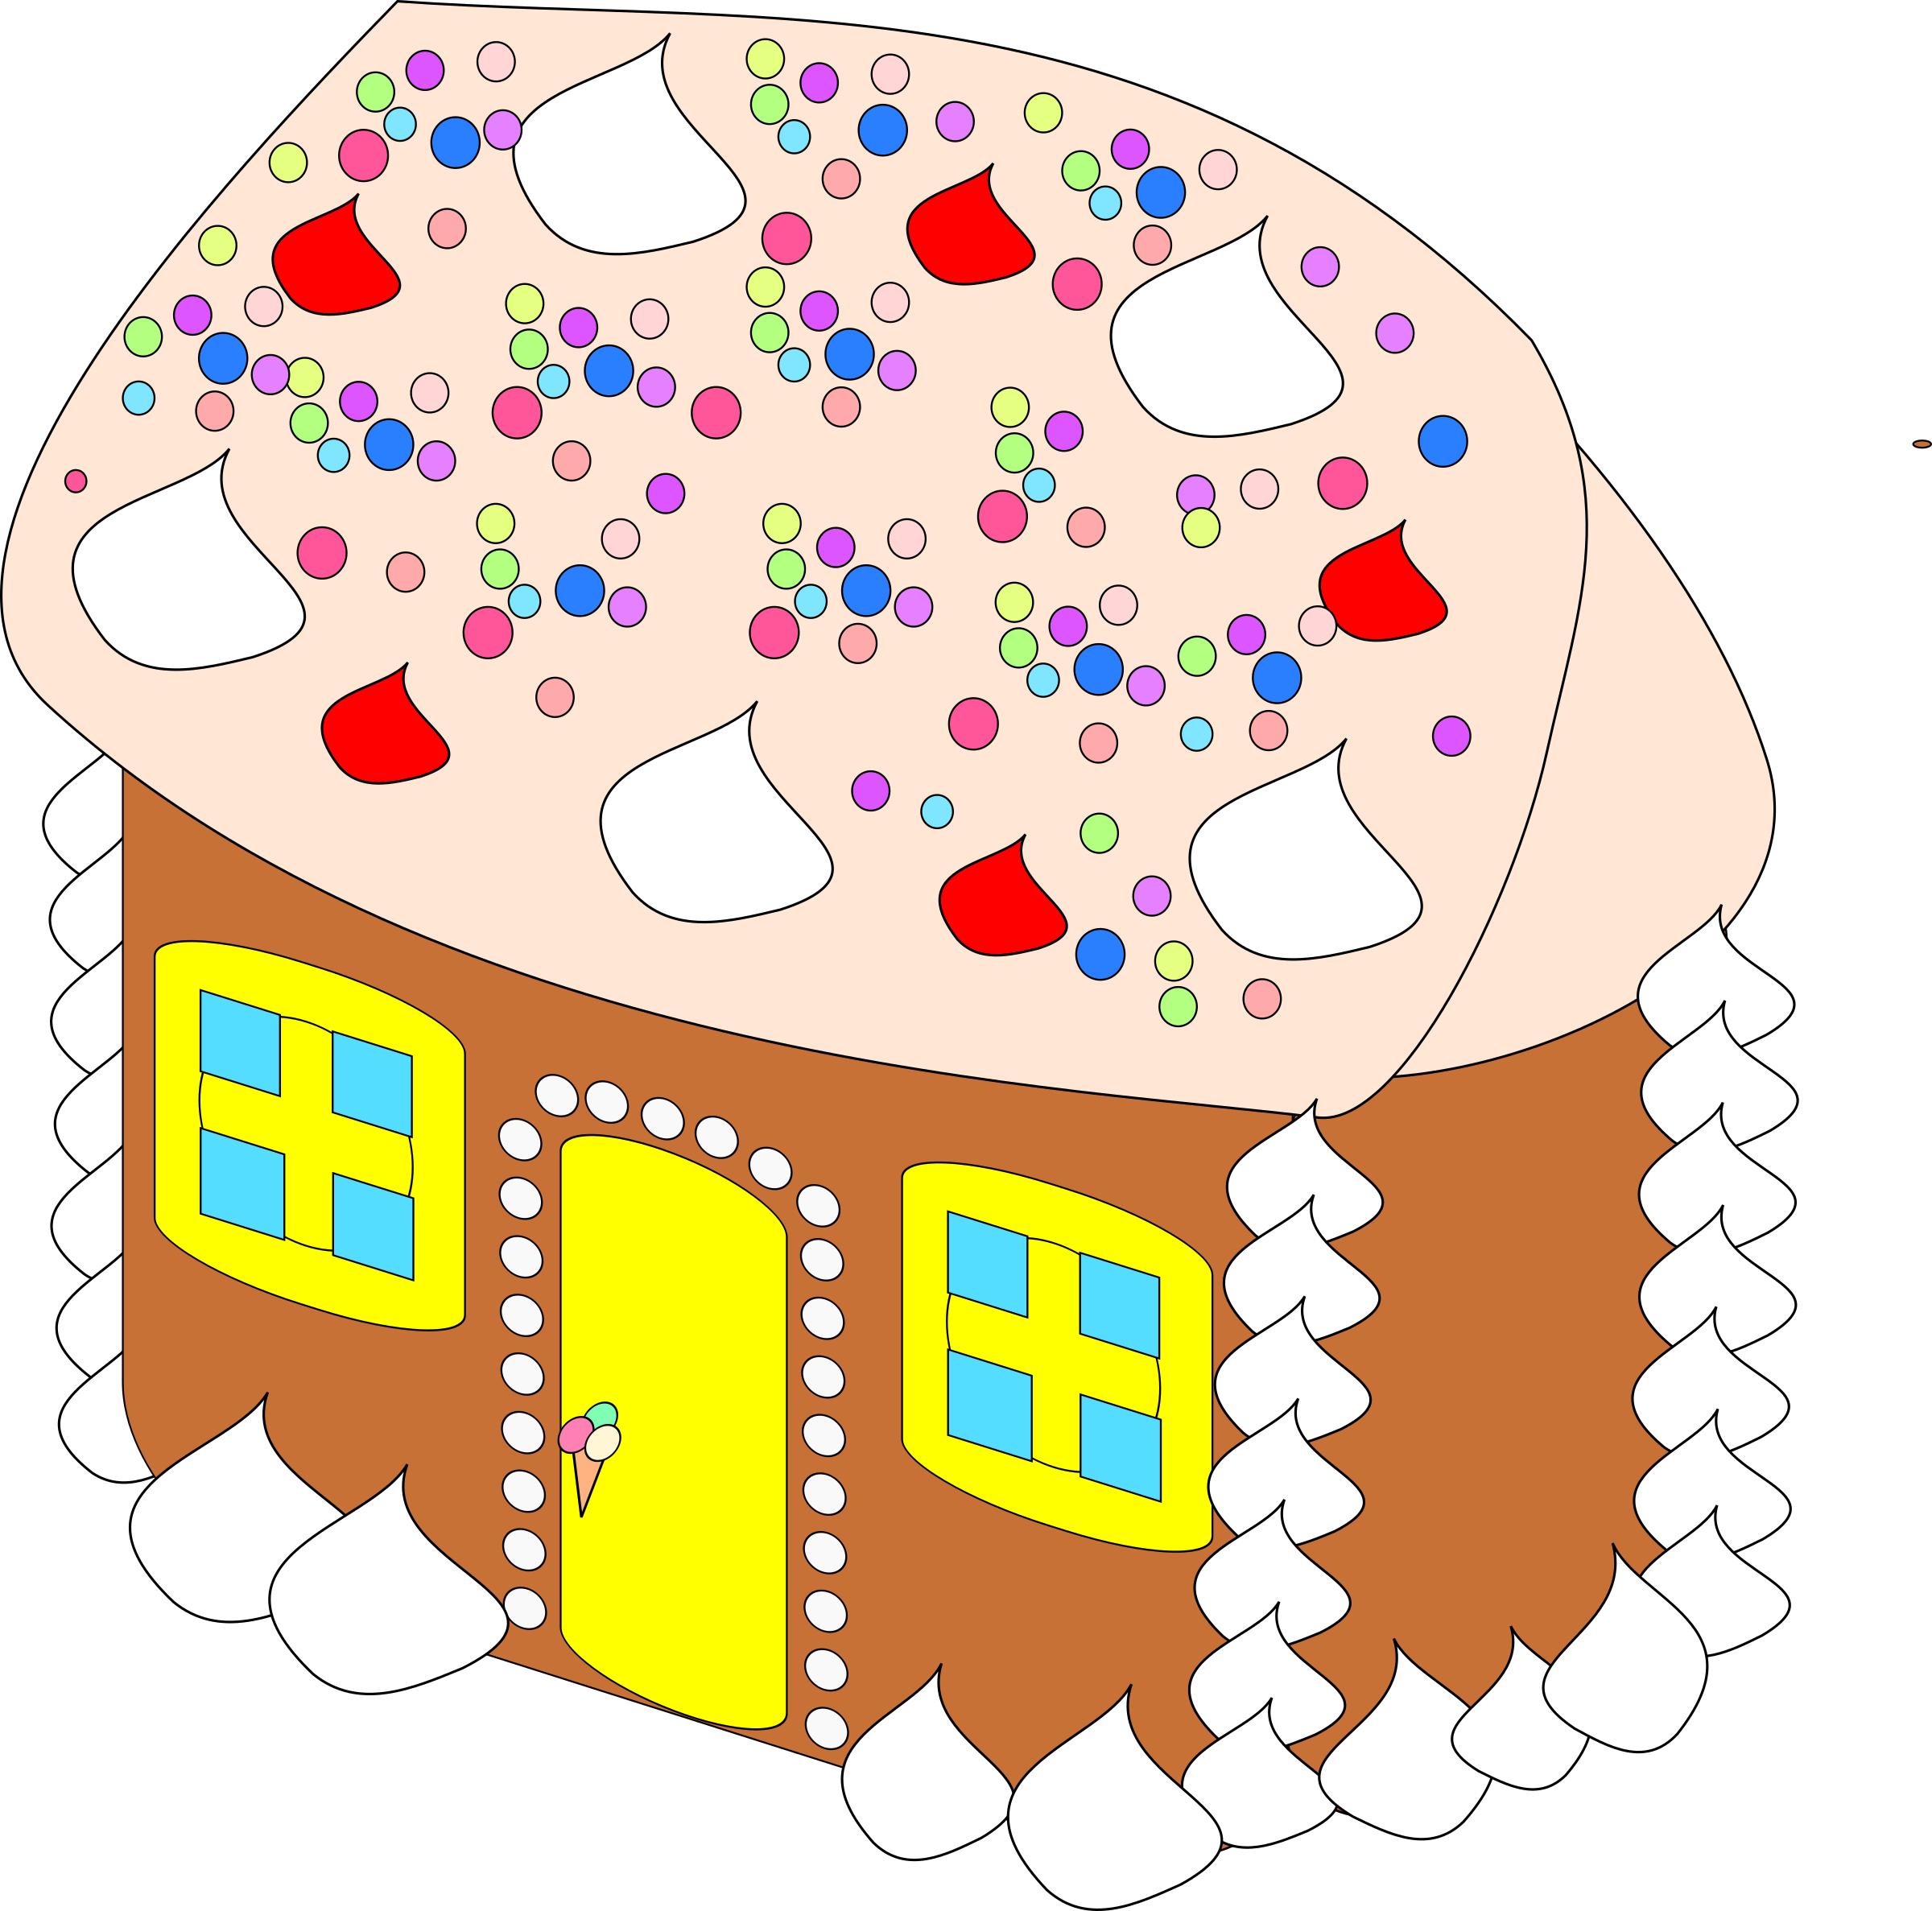 Fantasy house clipart. Sweet big image png